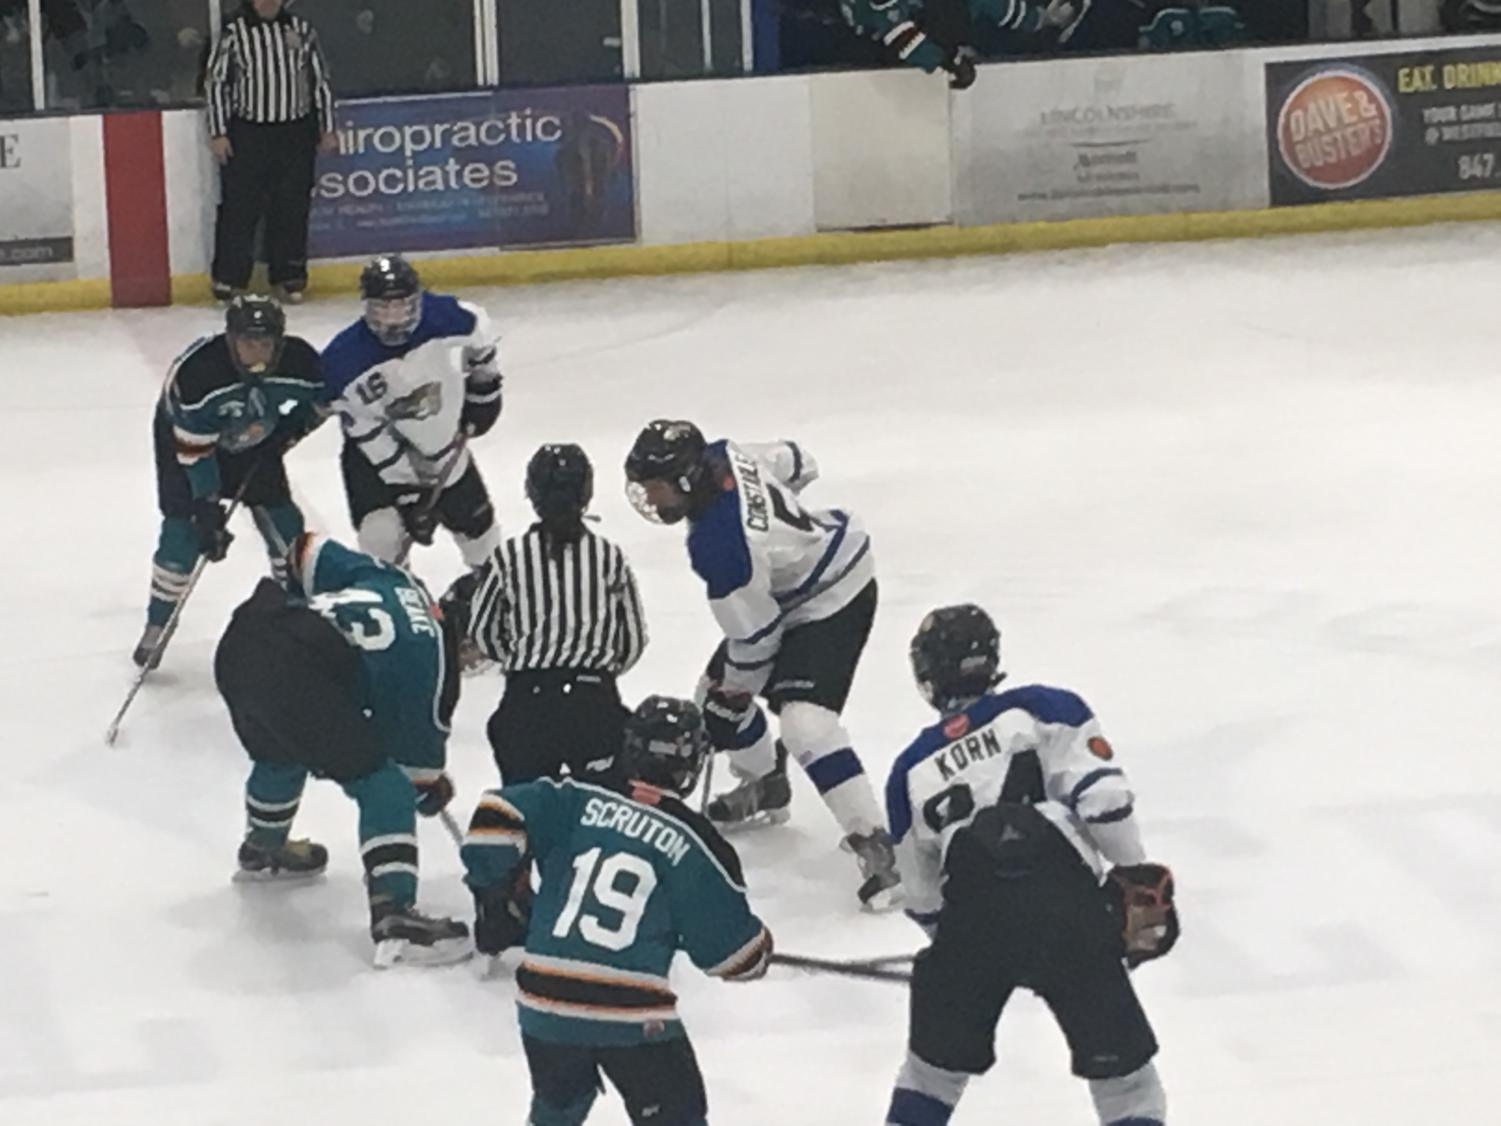 IceCats lineup for a faceoff during a January 27th game vs. the Lakers